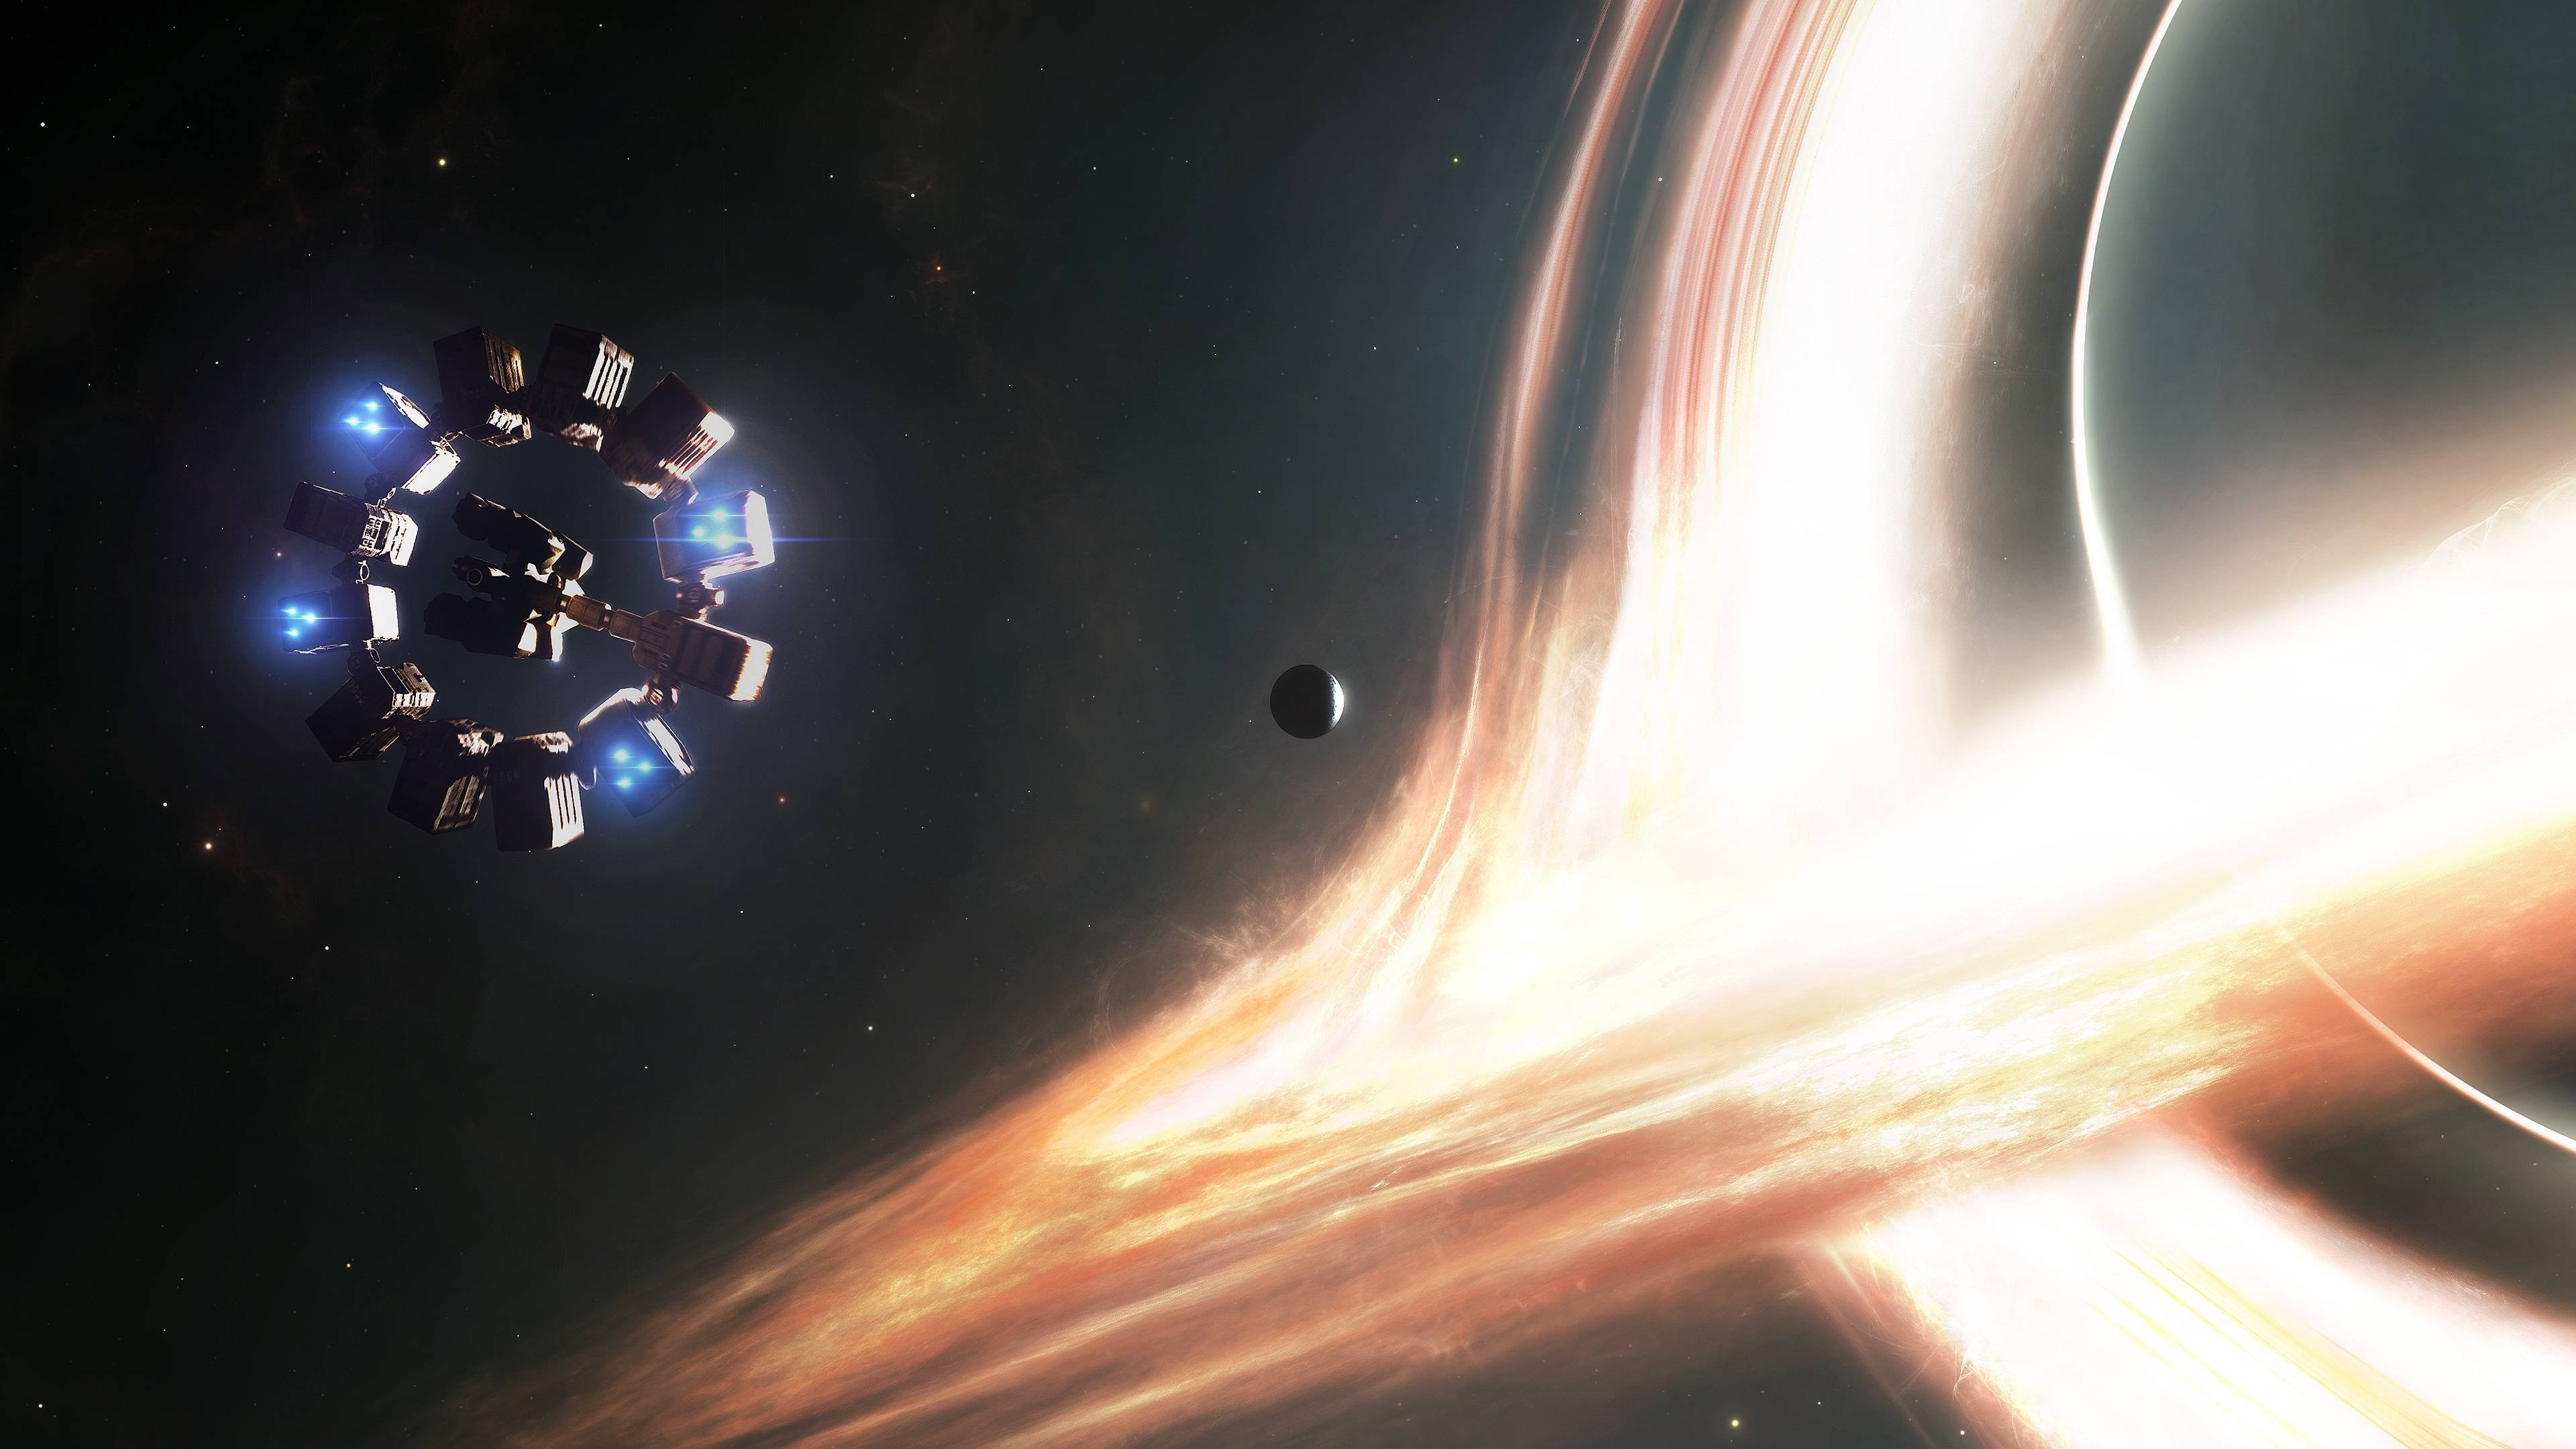 Another Interstellar Wallpaper Wallpaper Gargantua